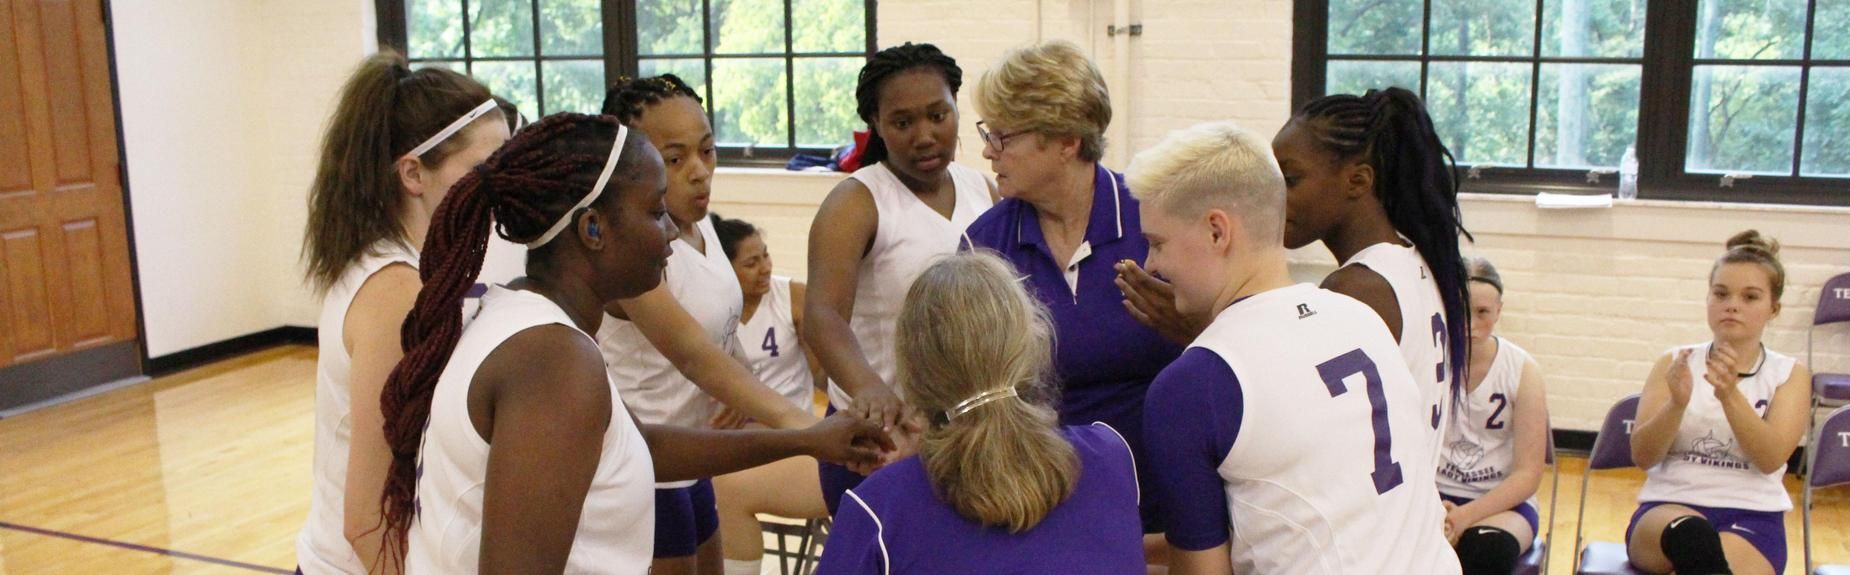 TSD Knoxville Volleyball Team in huddle